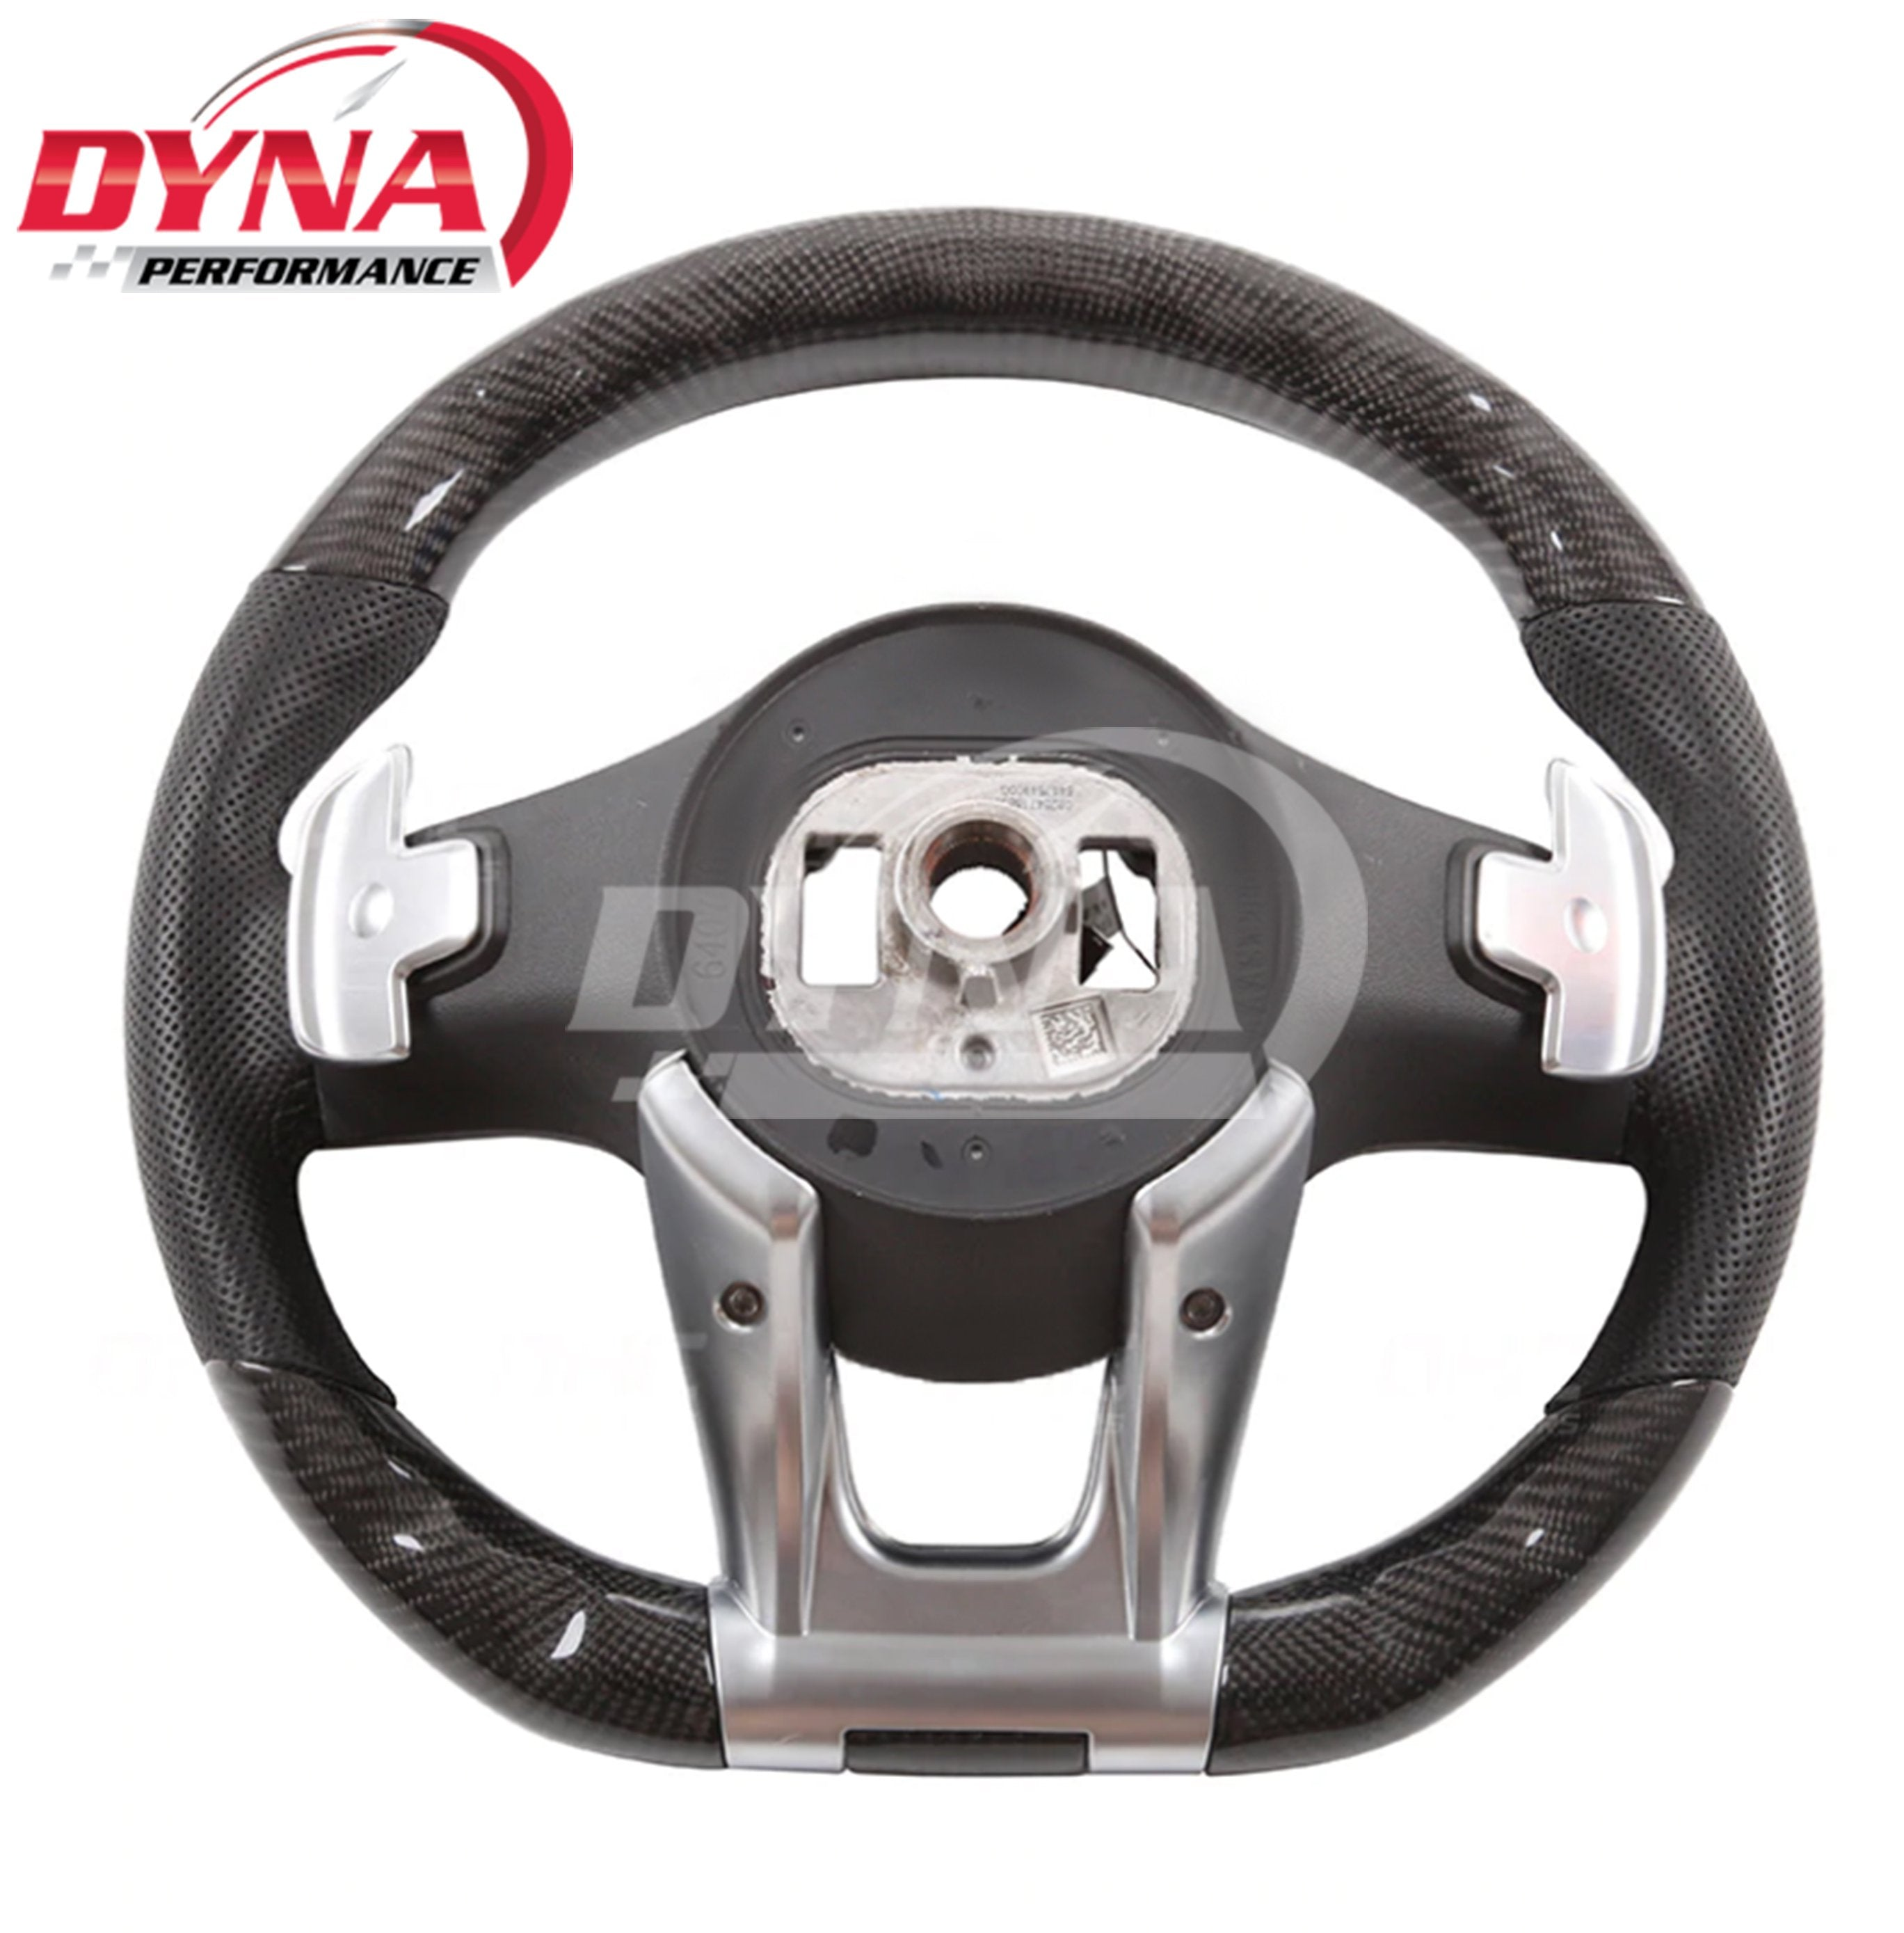 Mercedes-Benz C Class 2018 - 2020 Steering Wheel